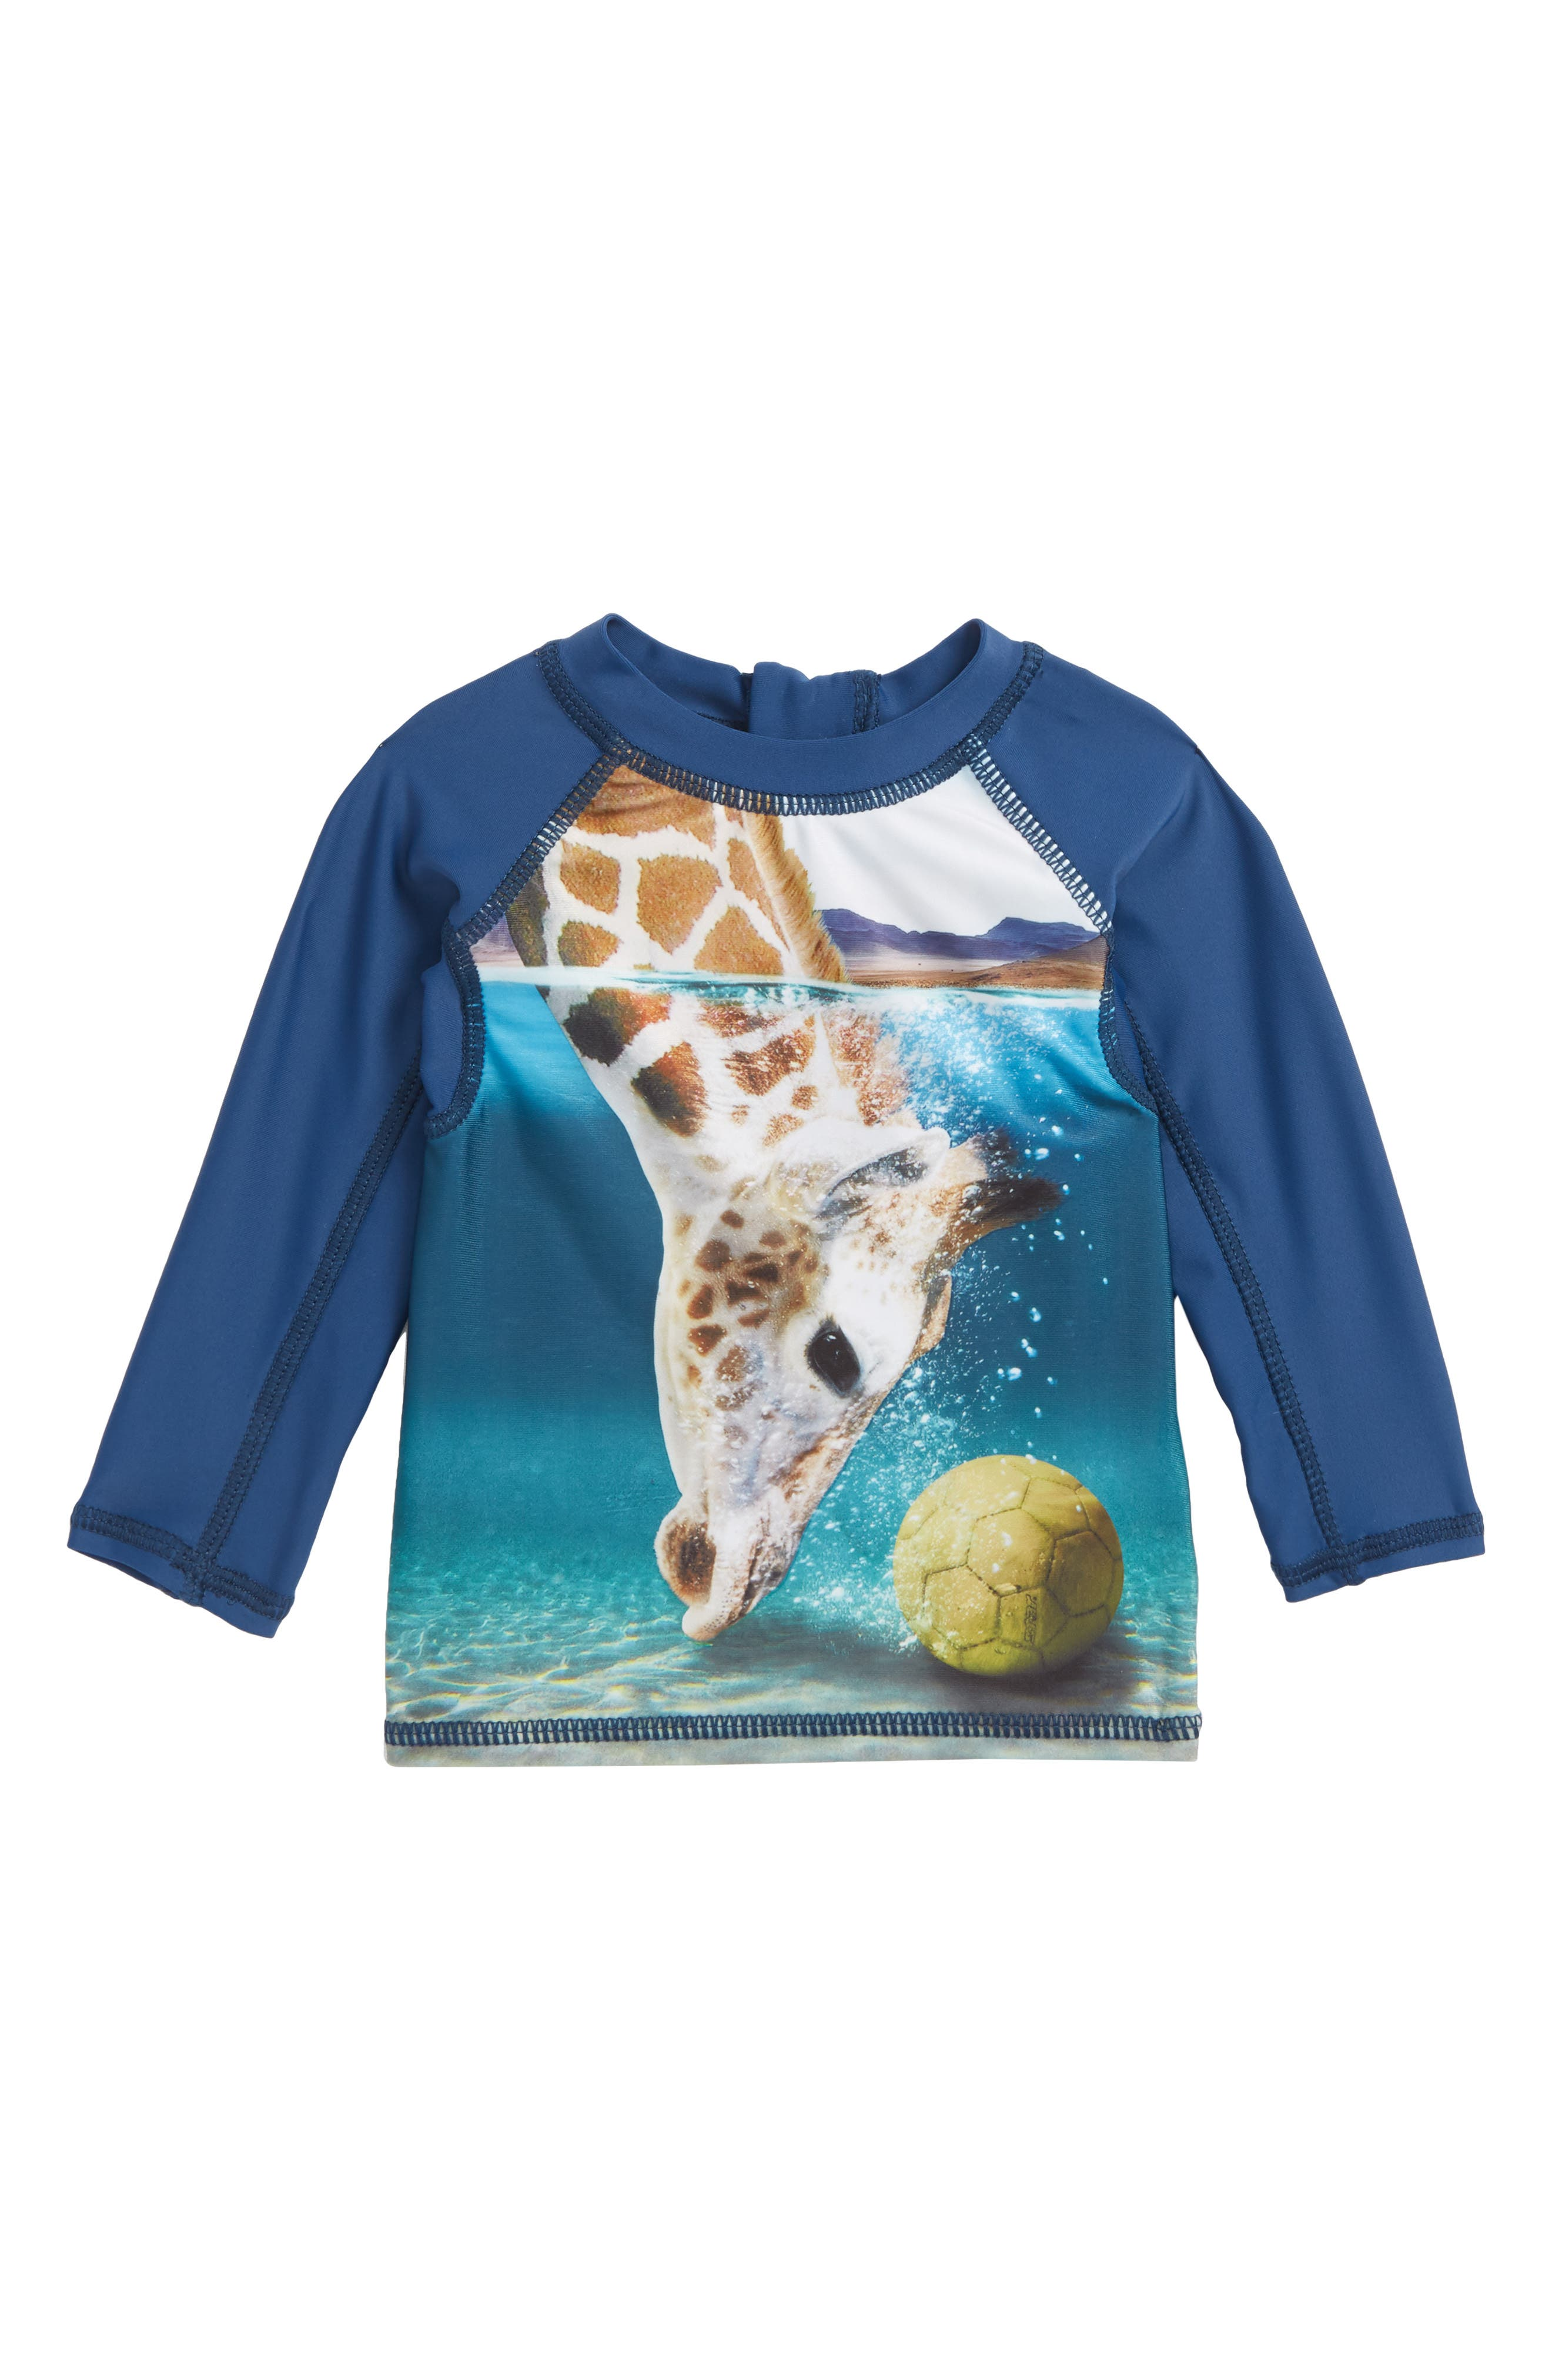 Nemo Rashguard,                         Main,                         color, Giraffe